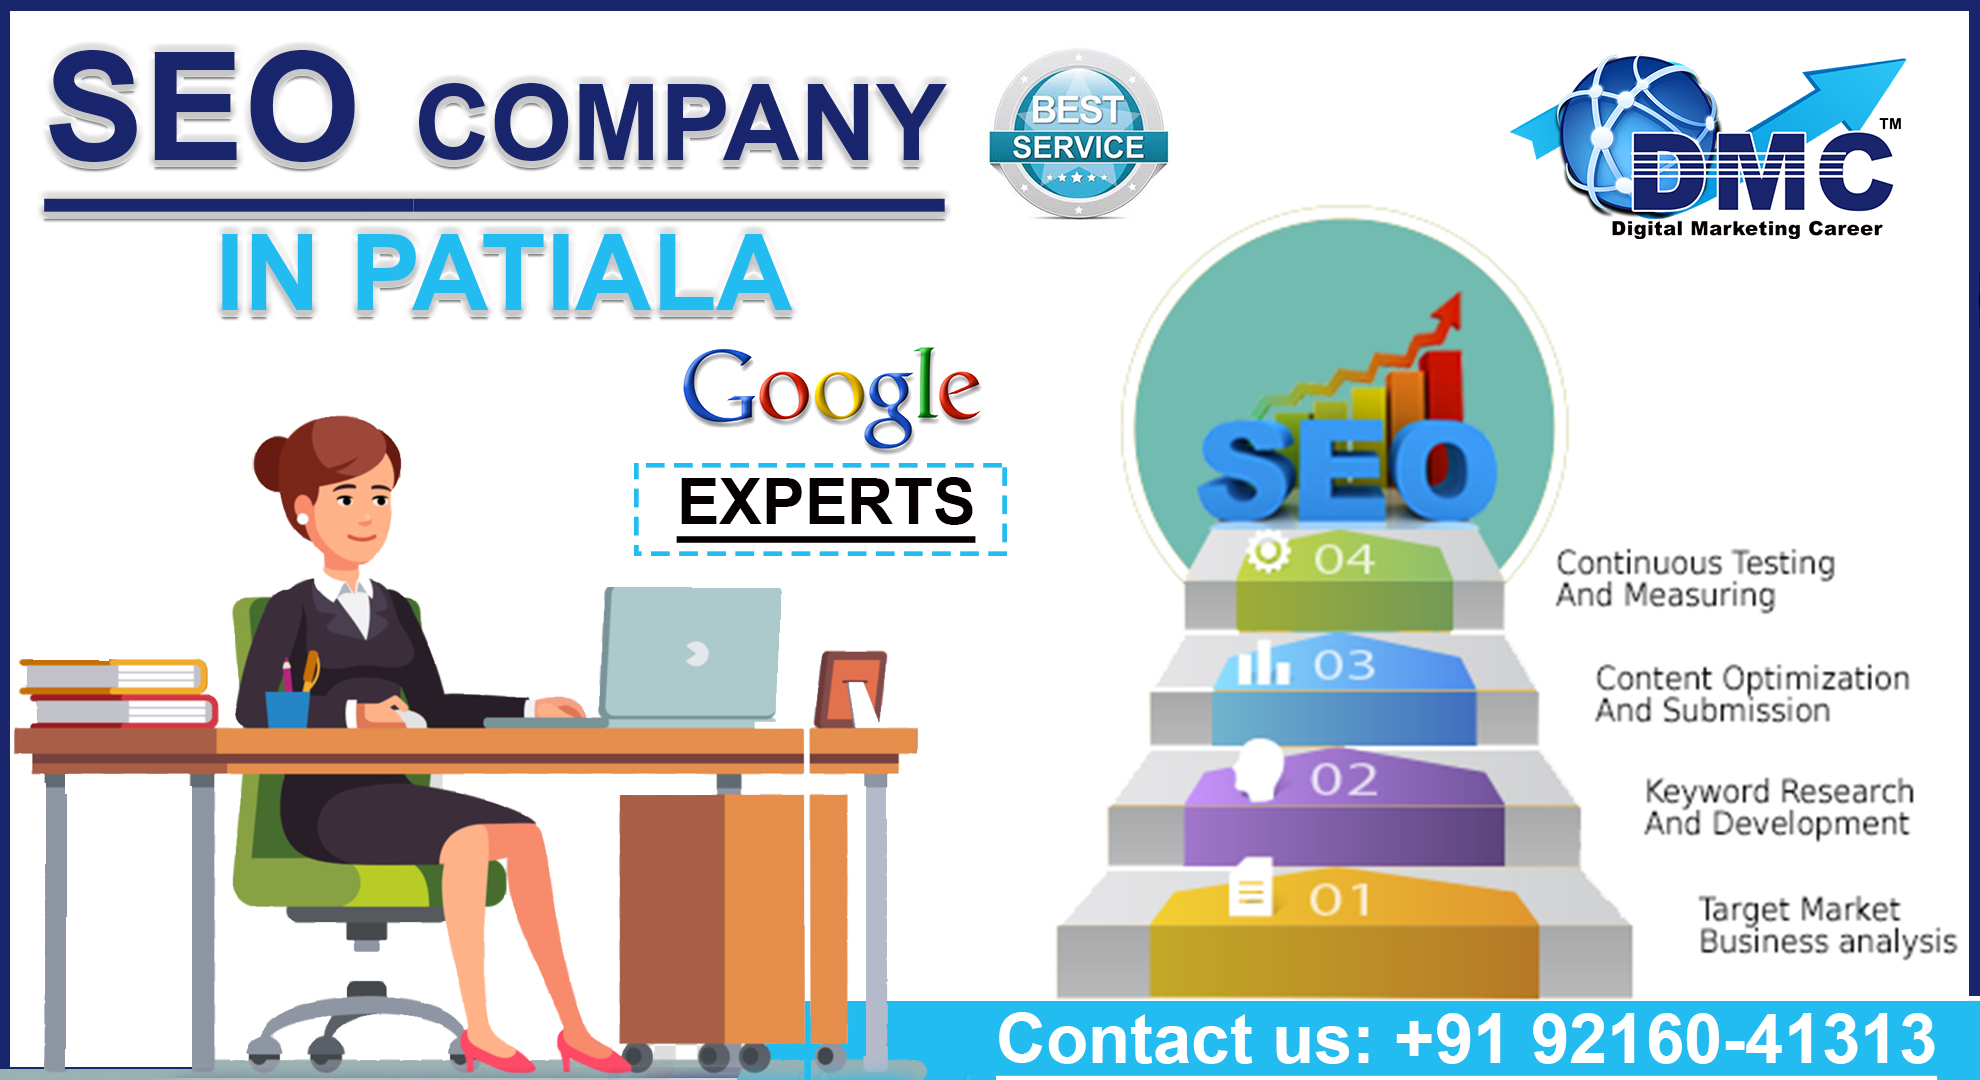 SEO Company in Patiala